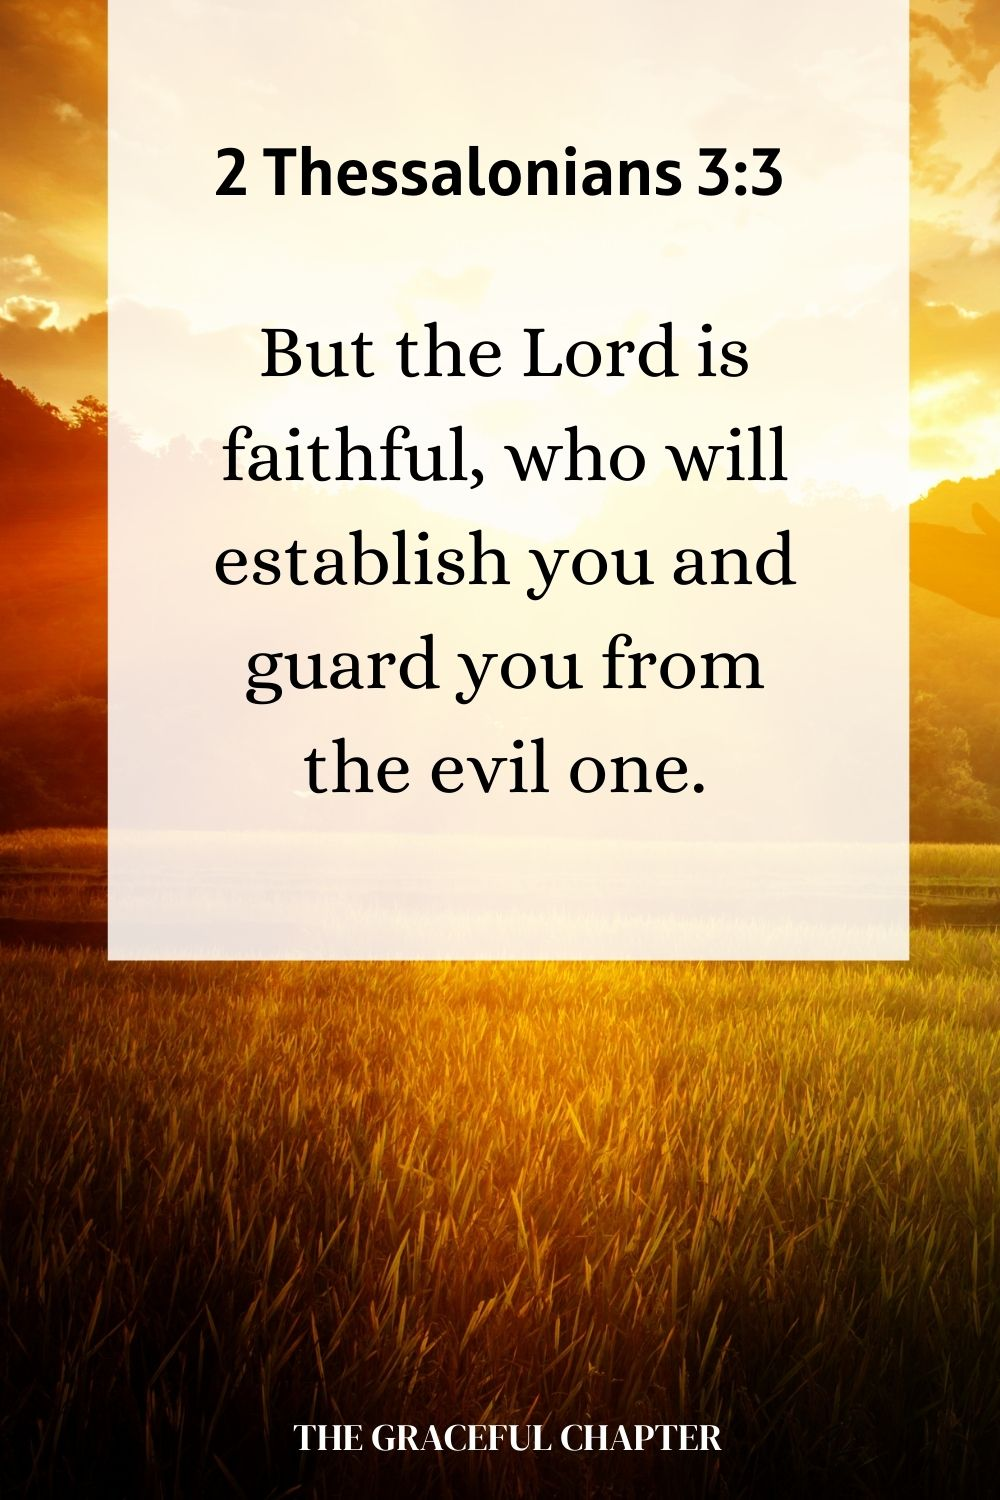 But the Lord is faithful, who will establish you and guard you from the evil one. 2 Thessalonians 3:3